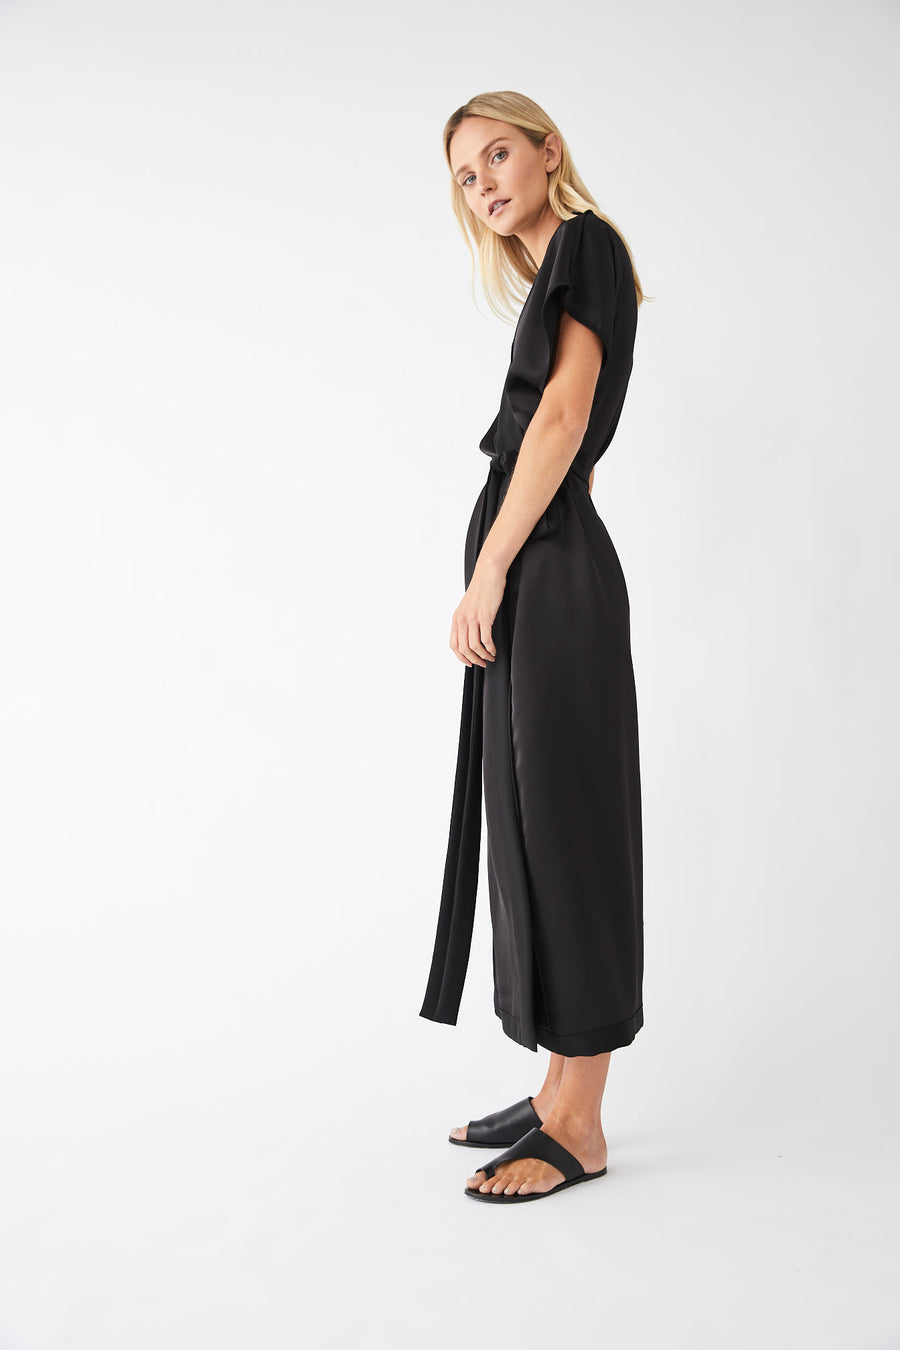 Underline Lounge Wrap Dress / Black